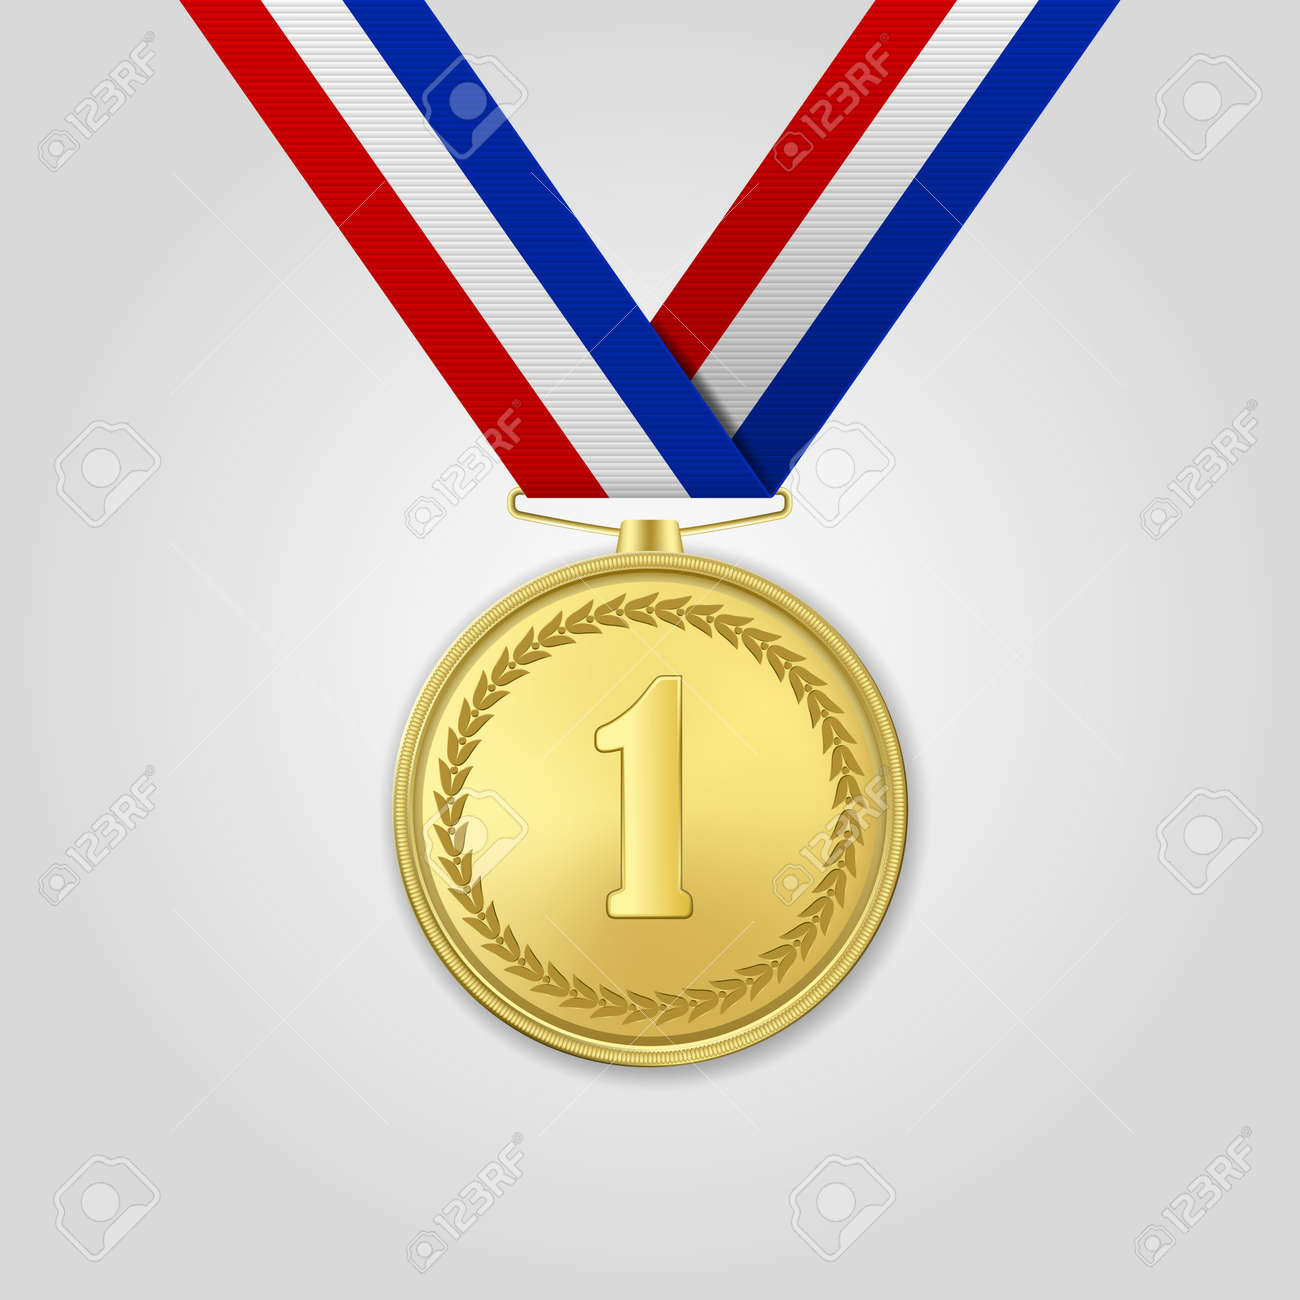 Vector 3d Realistic Gold Award Medal with Color Ribbon Closeup Isolated on White Background. The First Place, Prize. Sport Tournament, Victory Concept - 126411019